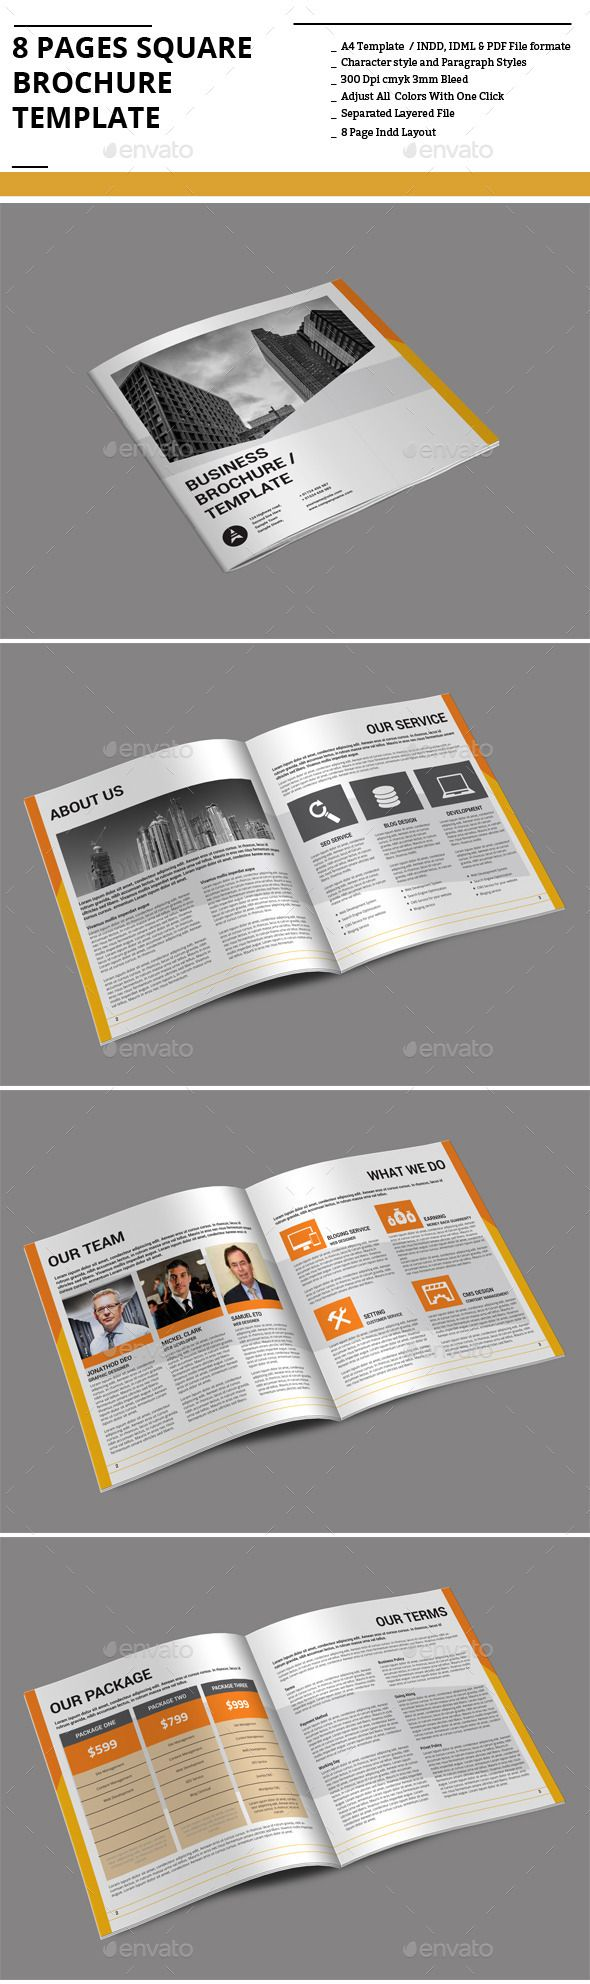 8 Pages Square Brochure Template — InDesign INDD #book #modern • Available here → https://graphicriver.net/item/8-pages-square-brochure-template/9167784?ref=pxcr